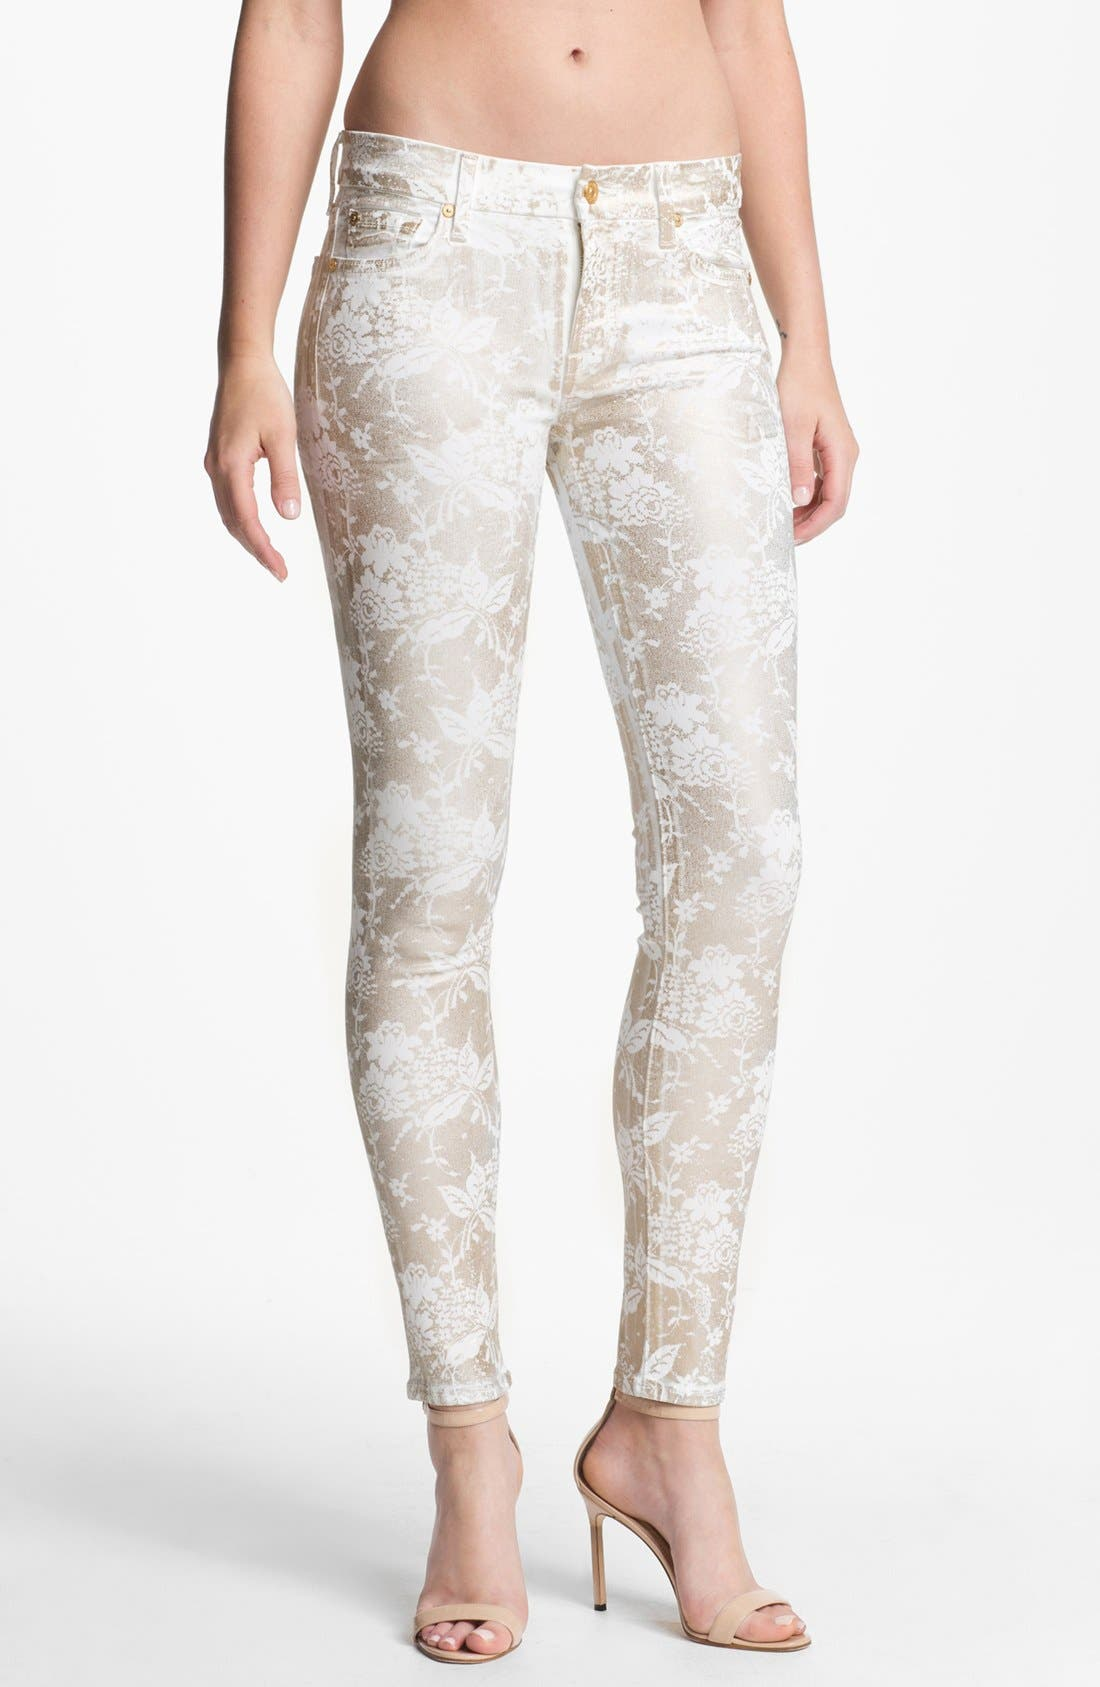 Alternate Image 1 Selected - 7 For All Mankind® 'The Skinny' Print Stretch Jeans (White/Almond Foil)